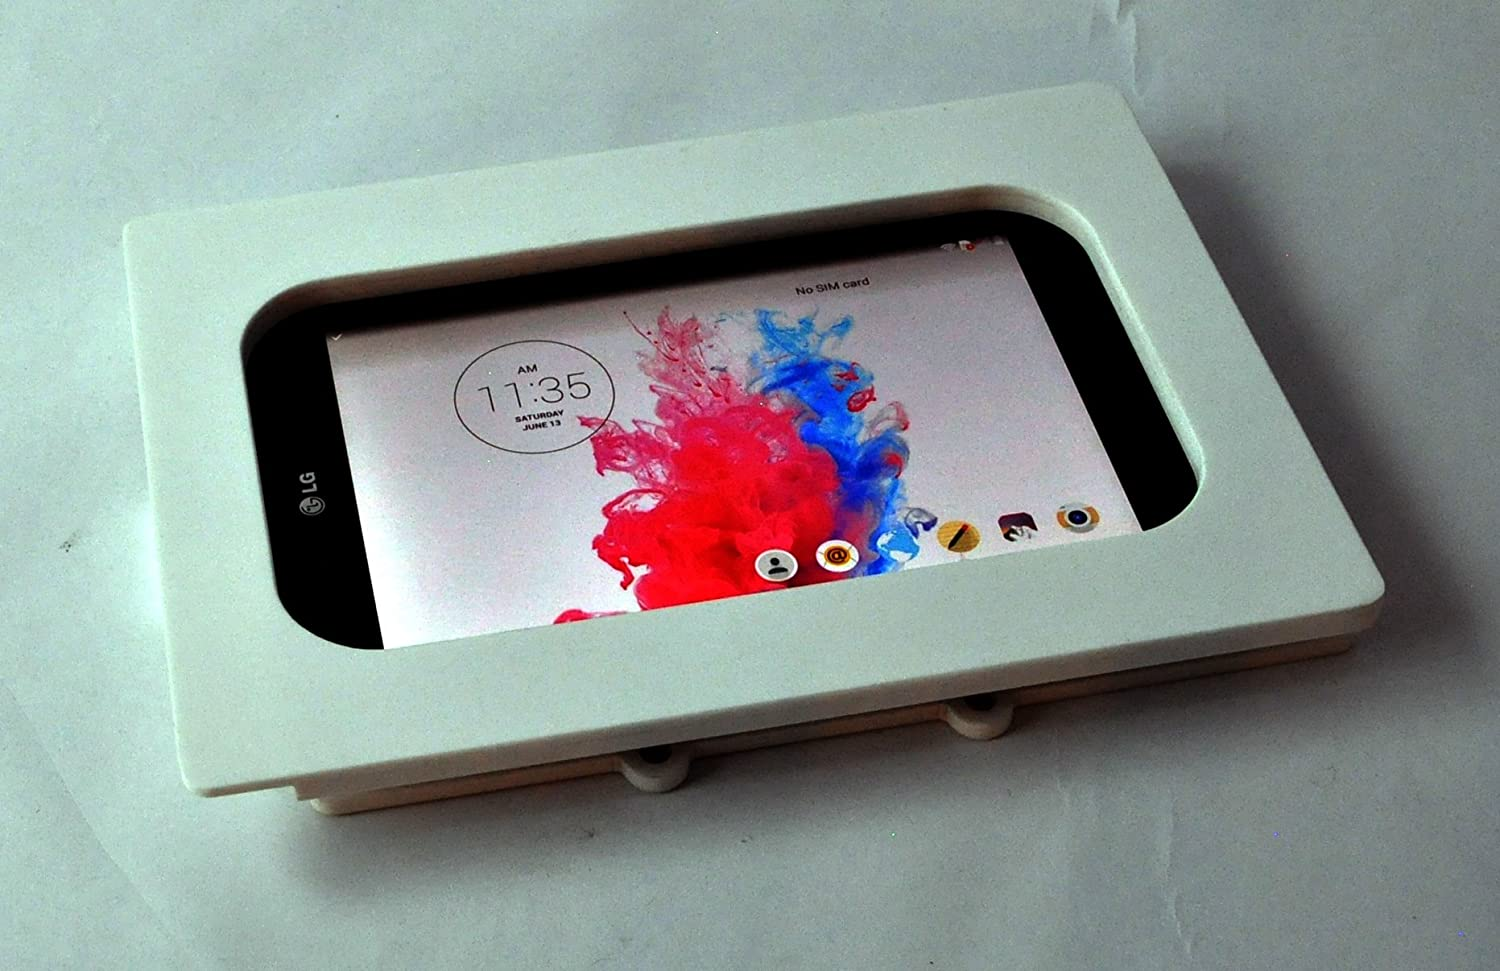 TABcare Compatible LG G pad 8 White Wall Mount Acrylic Security Enclosure for POS, Kiosk, Store Display